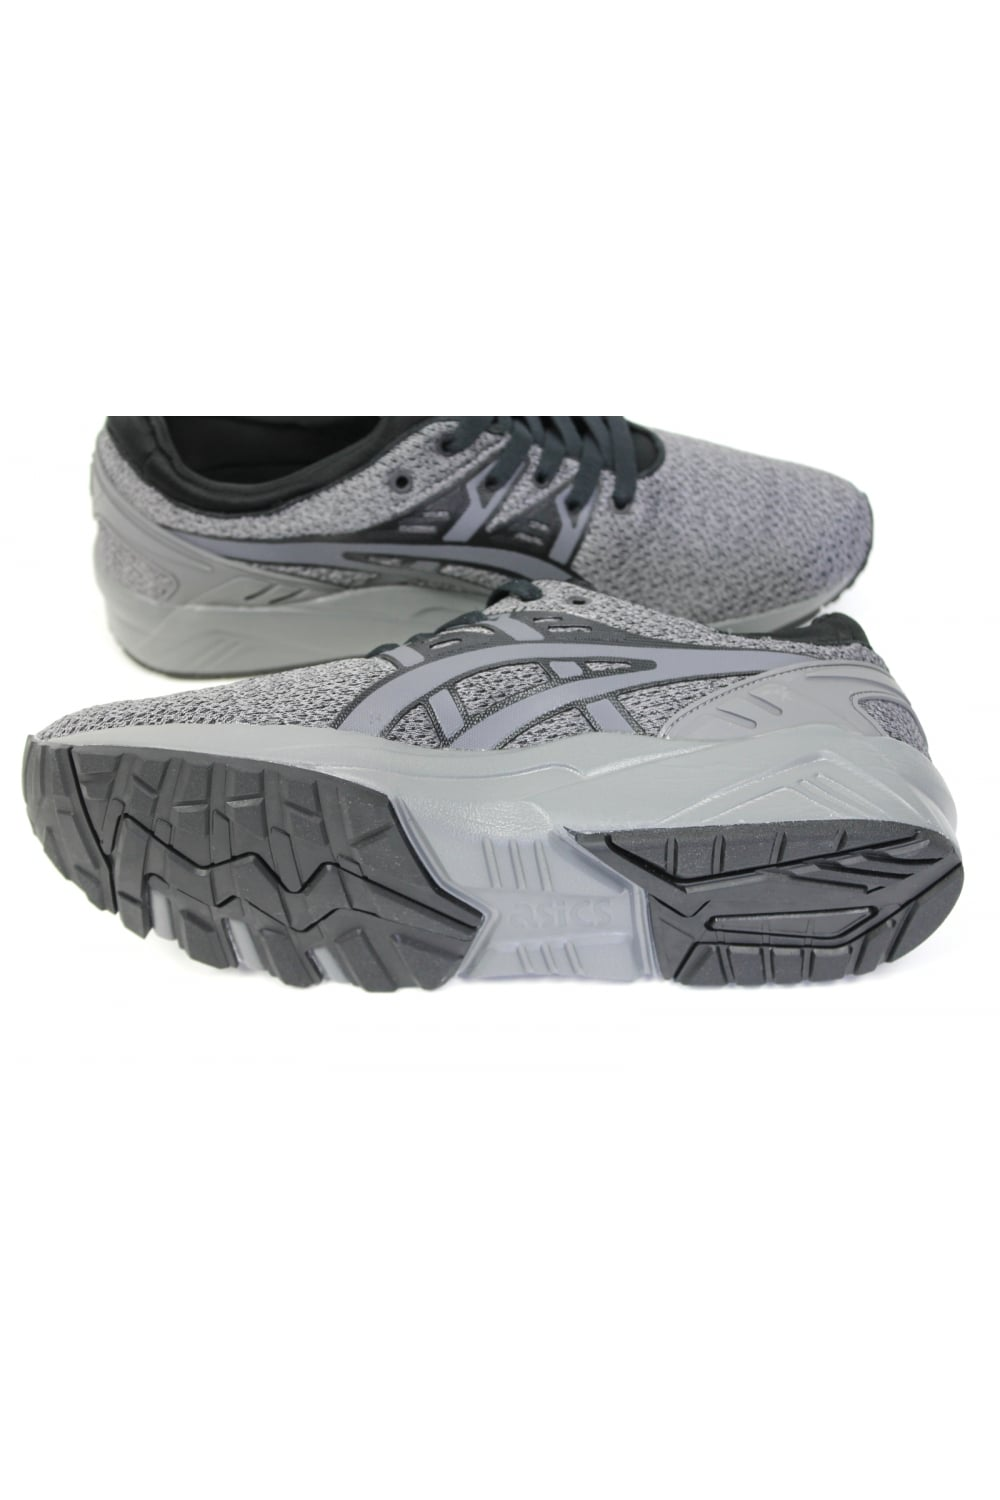 asics gel kayano trainer evo carbon